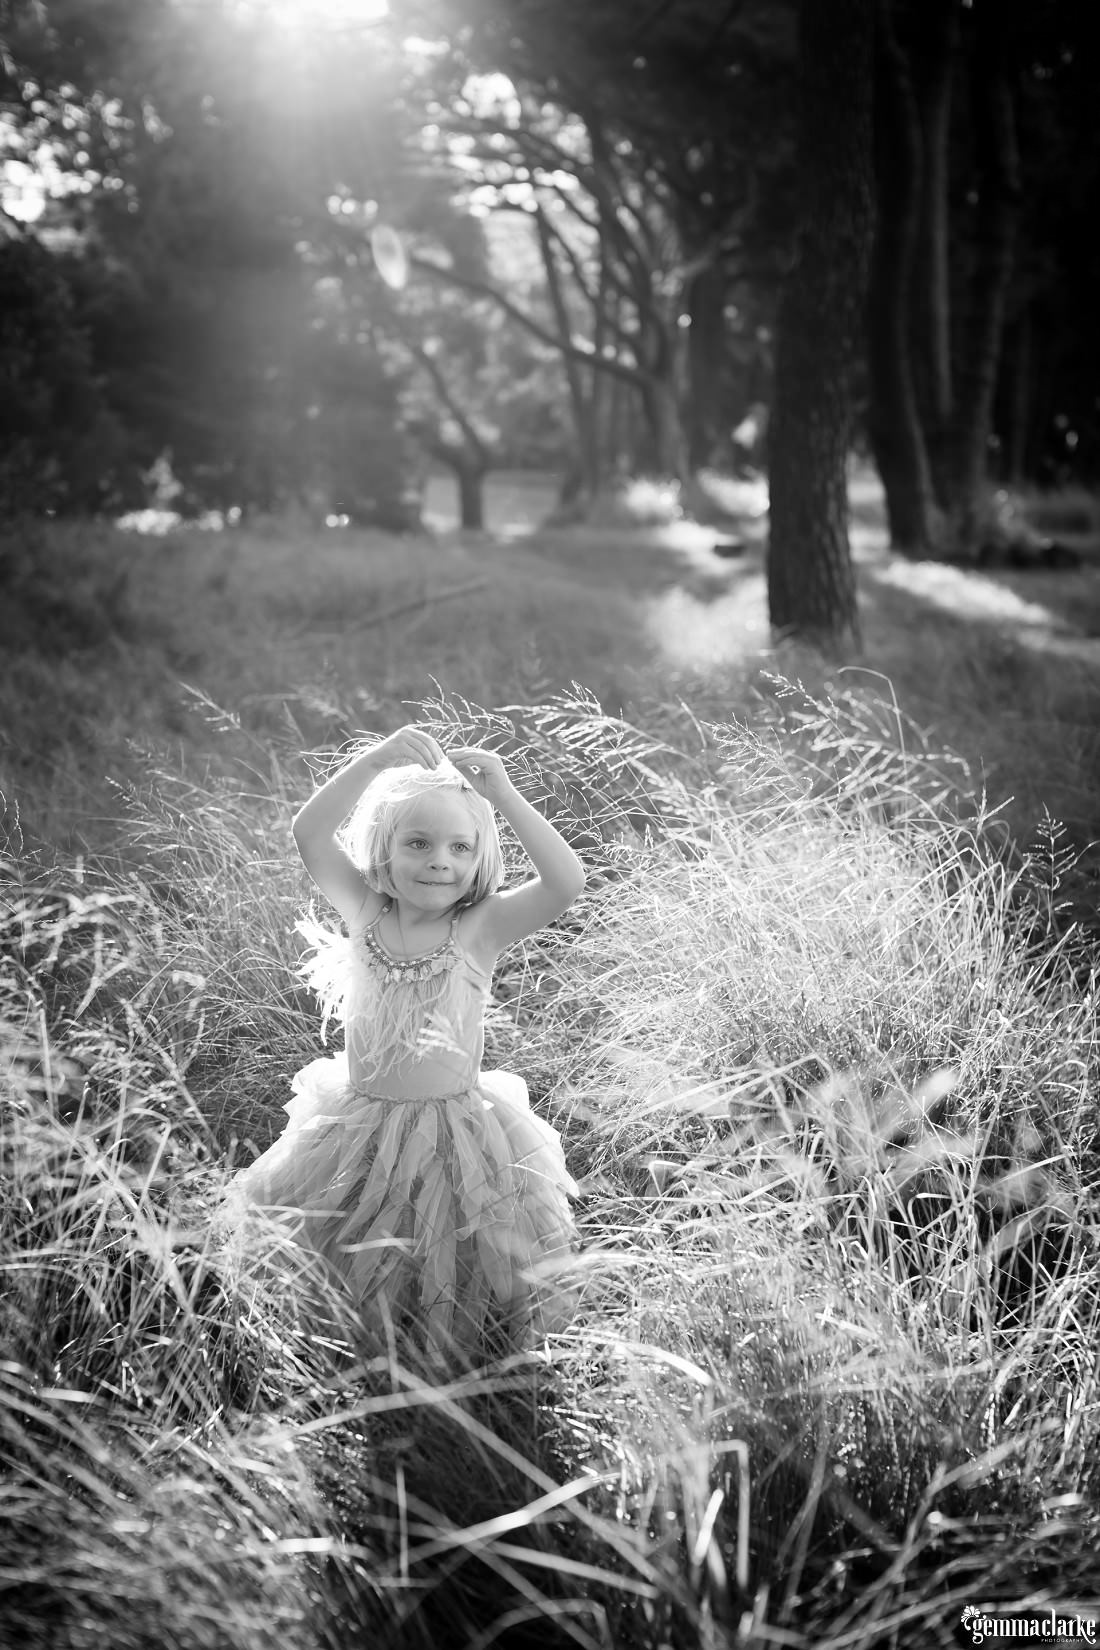 A young girl smiles and strikes a pose in long grass